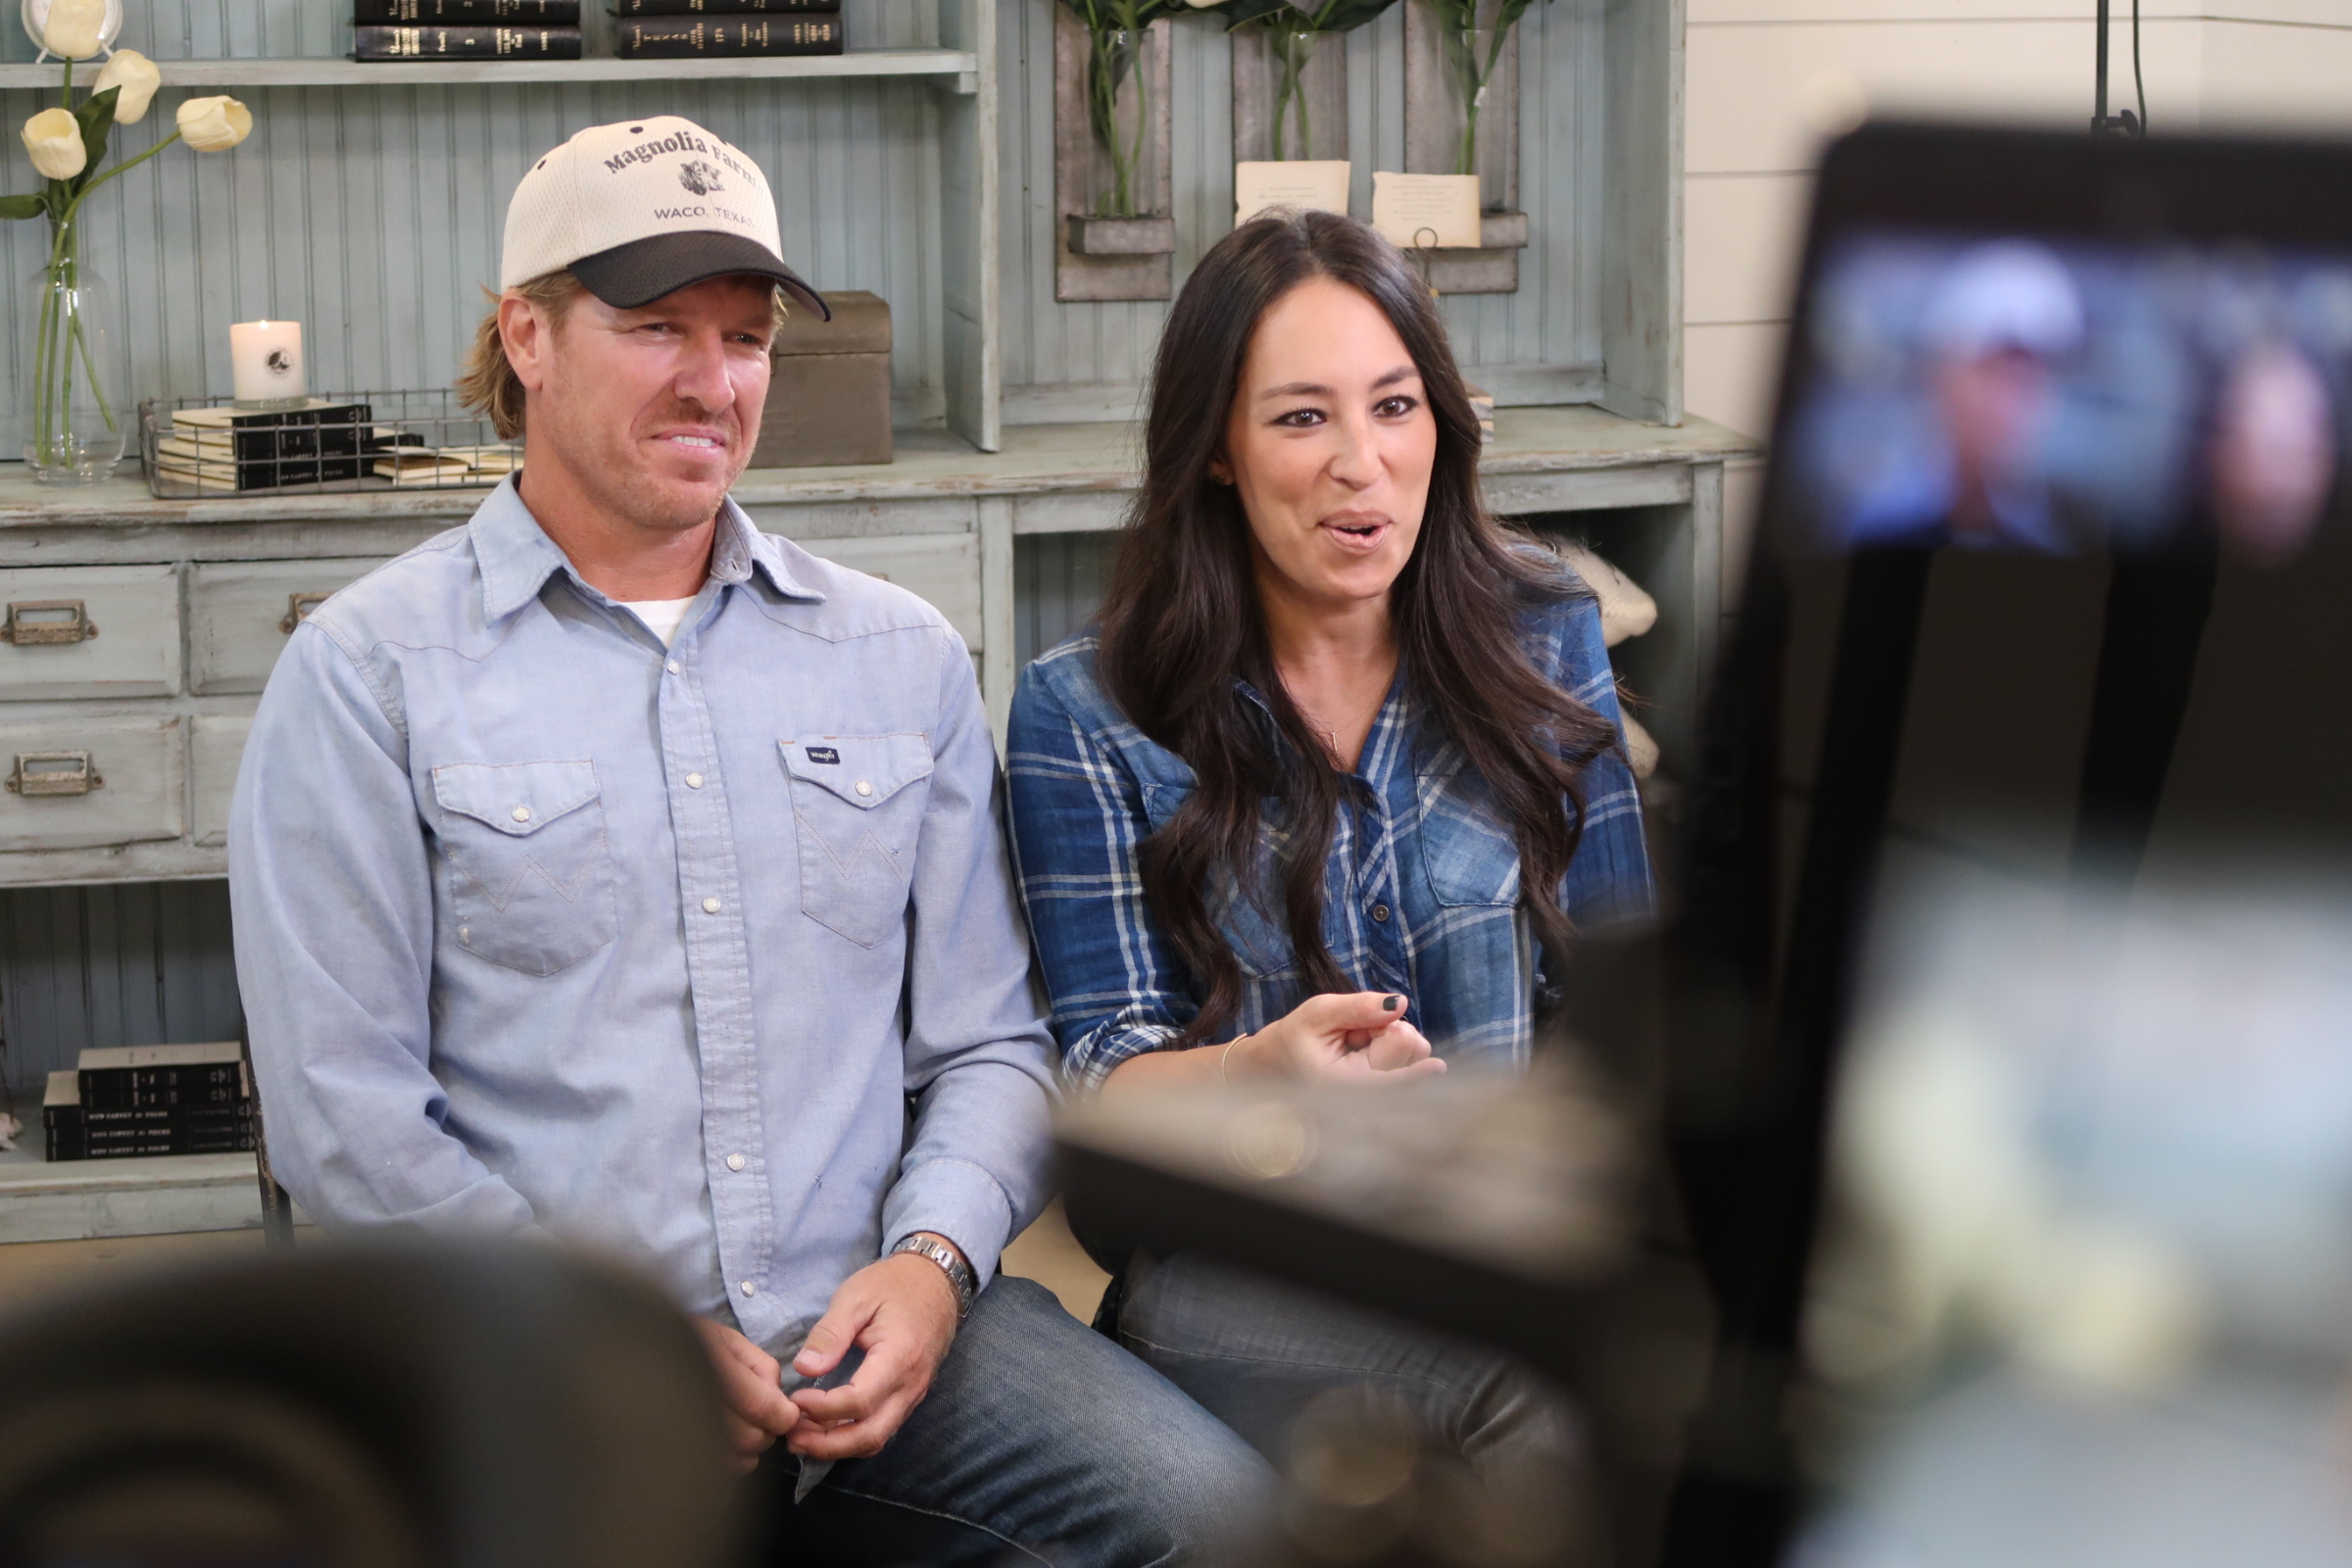 image32 Texas Cameraman Reunites with Chip and Joanna Gaines for The Today Show